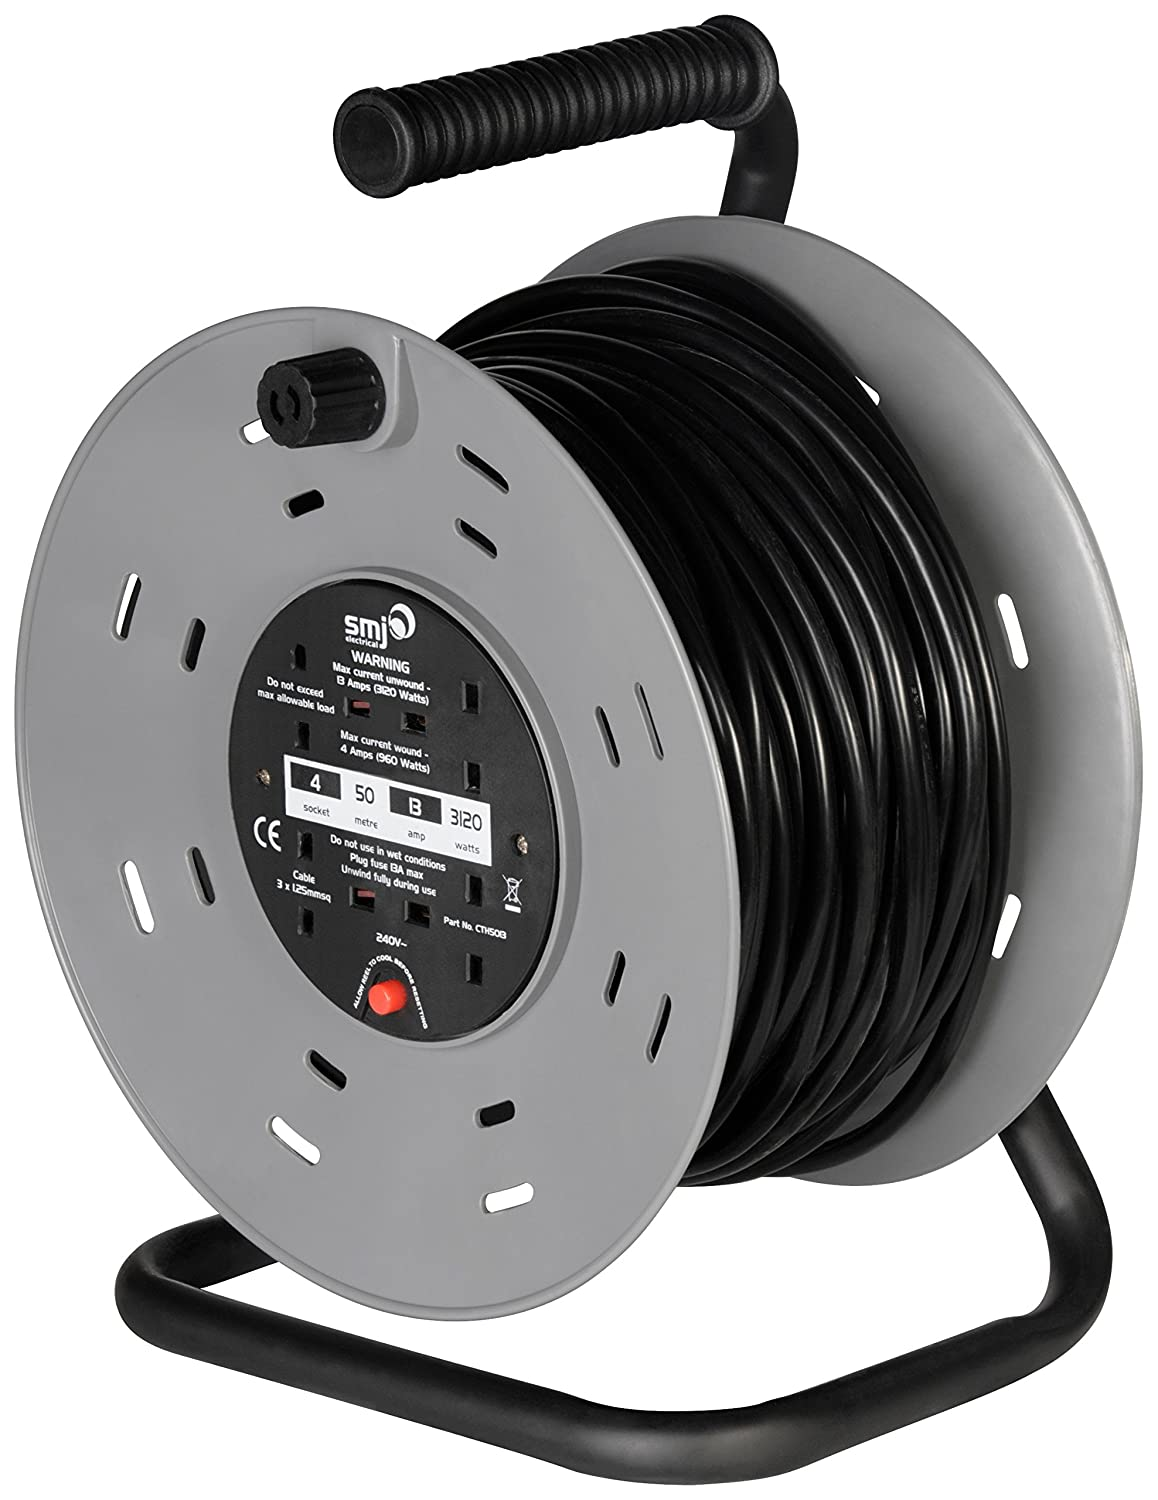 SMJ CTH5013-4SKT 50MTR 13A Heavy Duty Cable Reel with Thermal Cut ...